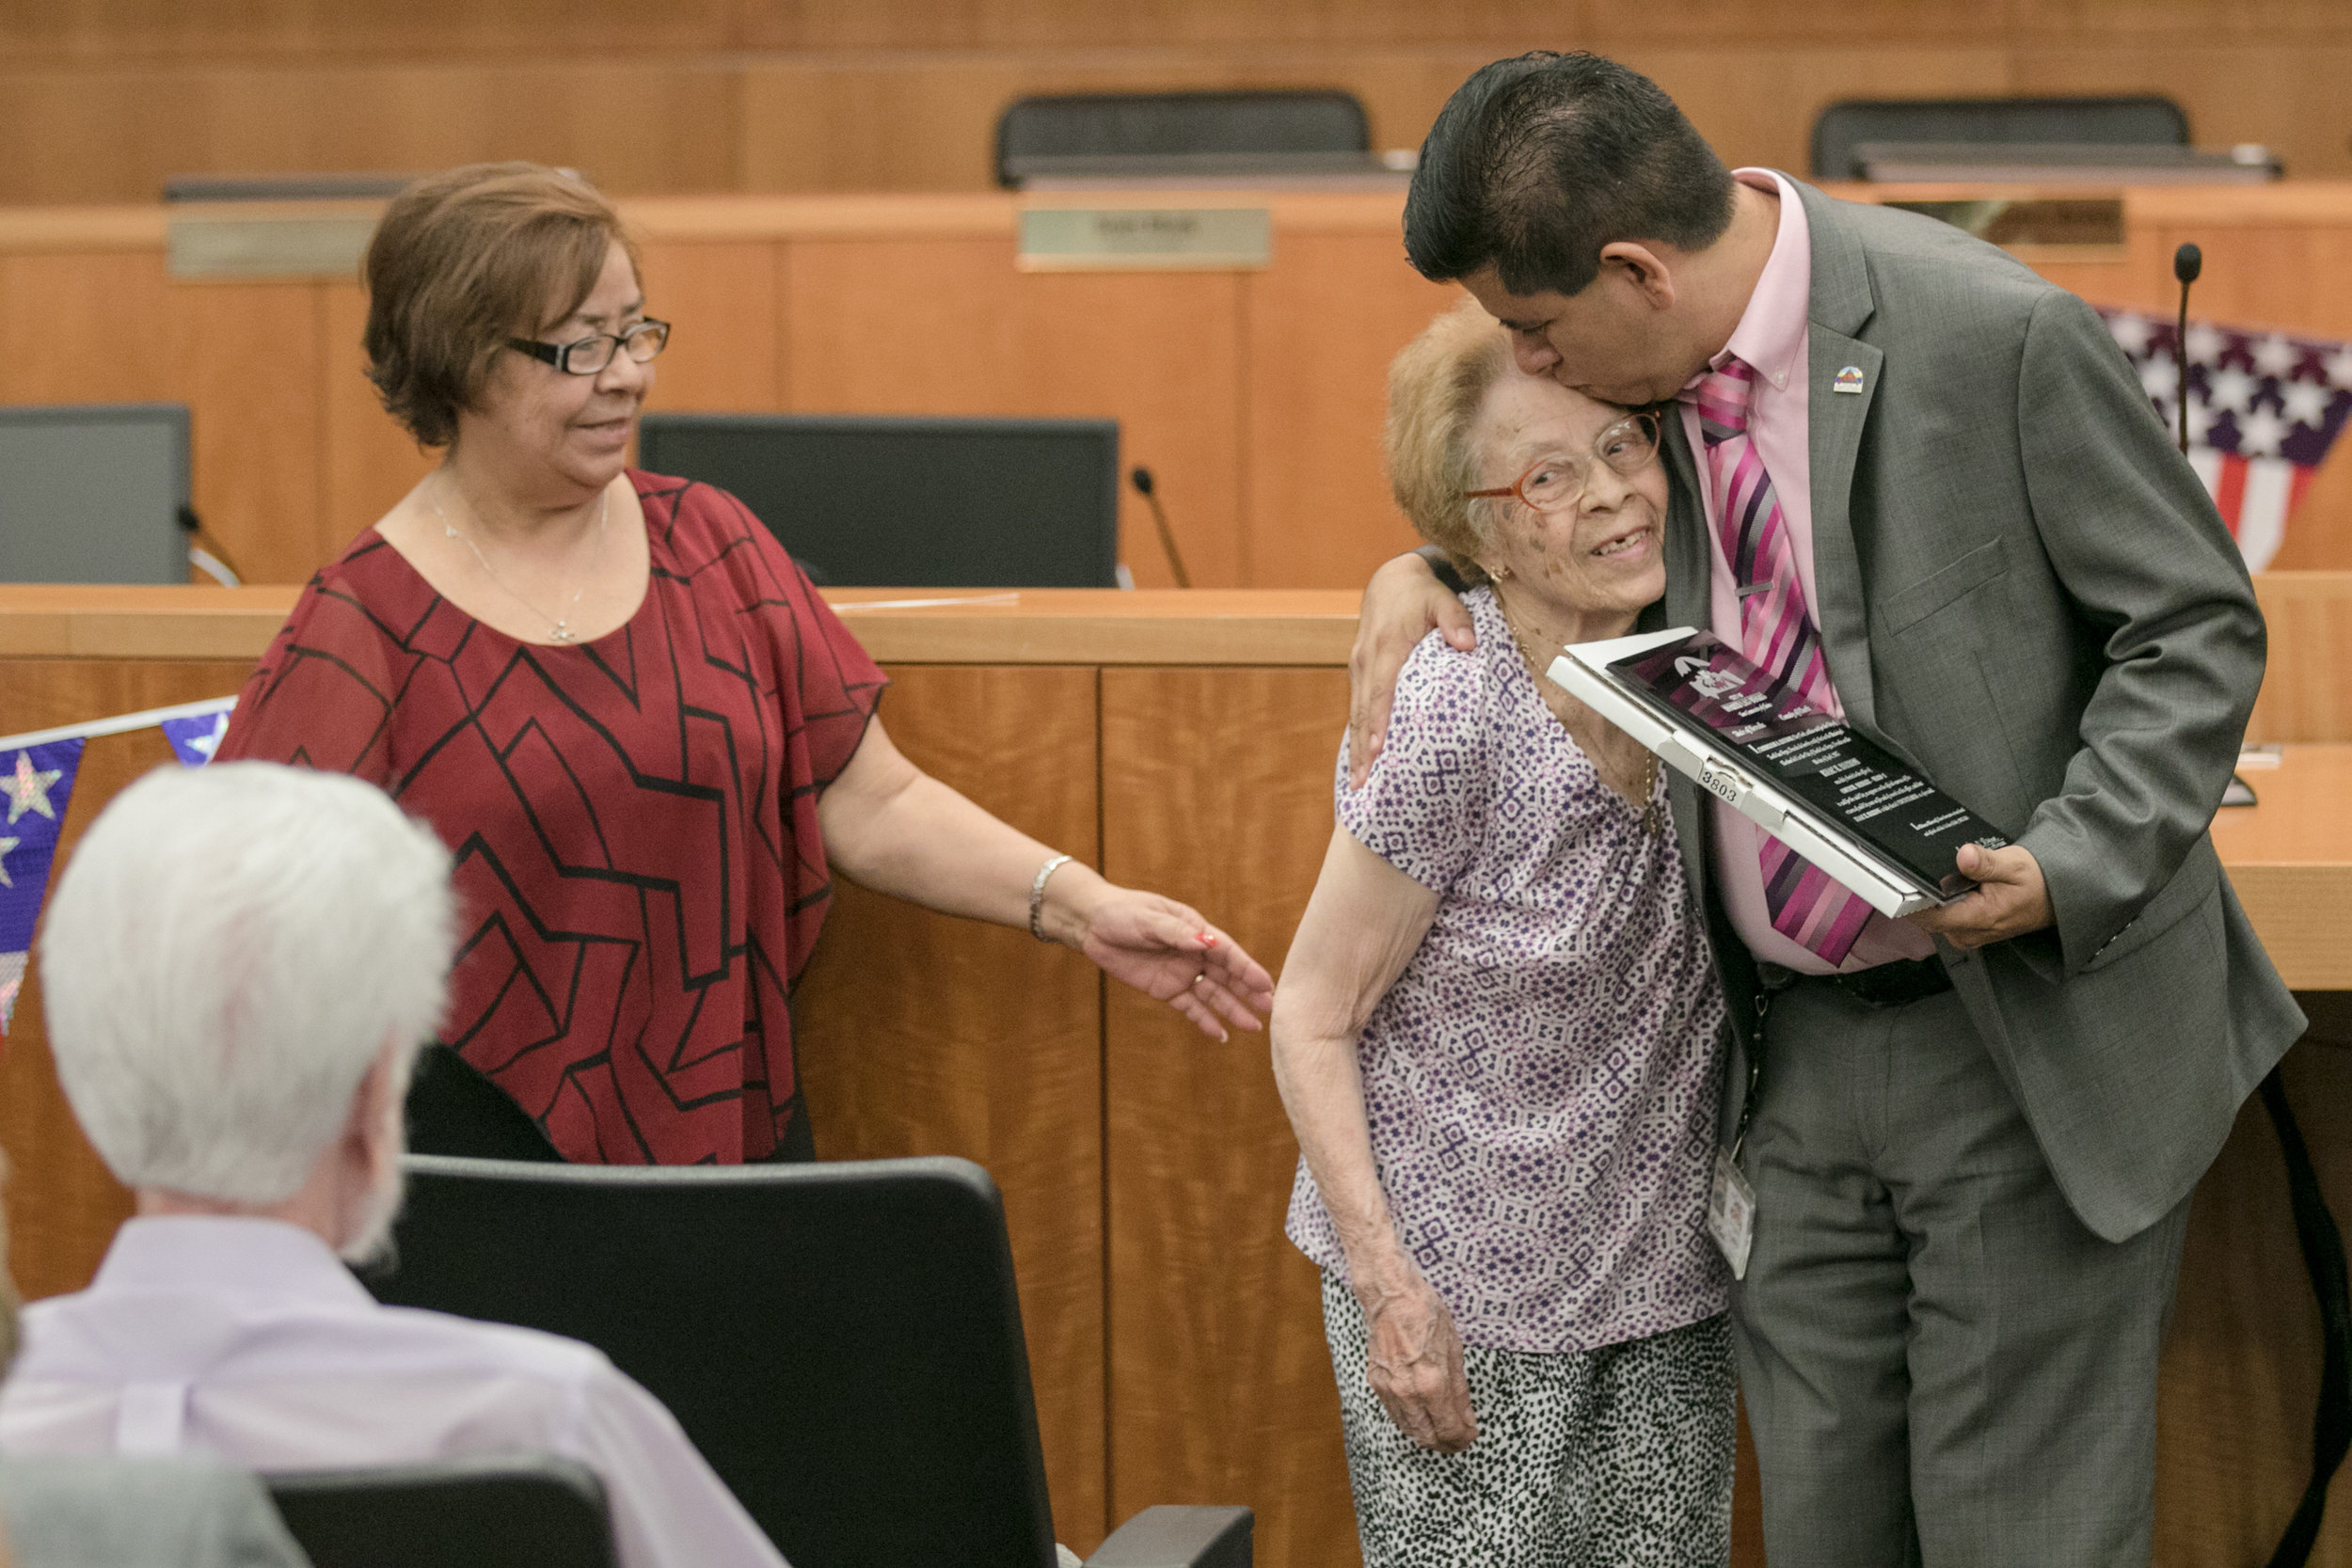 Councilman Isaac Barron hugs his grandmother after his swearing in ceremony at North Las Vegas City Hall on Wednesday, July 5, 2017, in Las Vegas. Morgan Lieberman Las Vegas Review-Journal